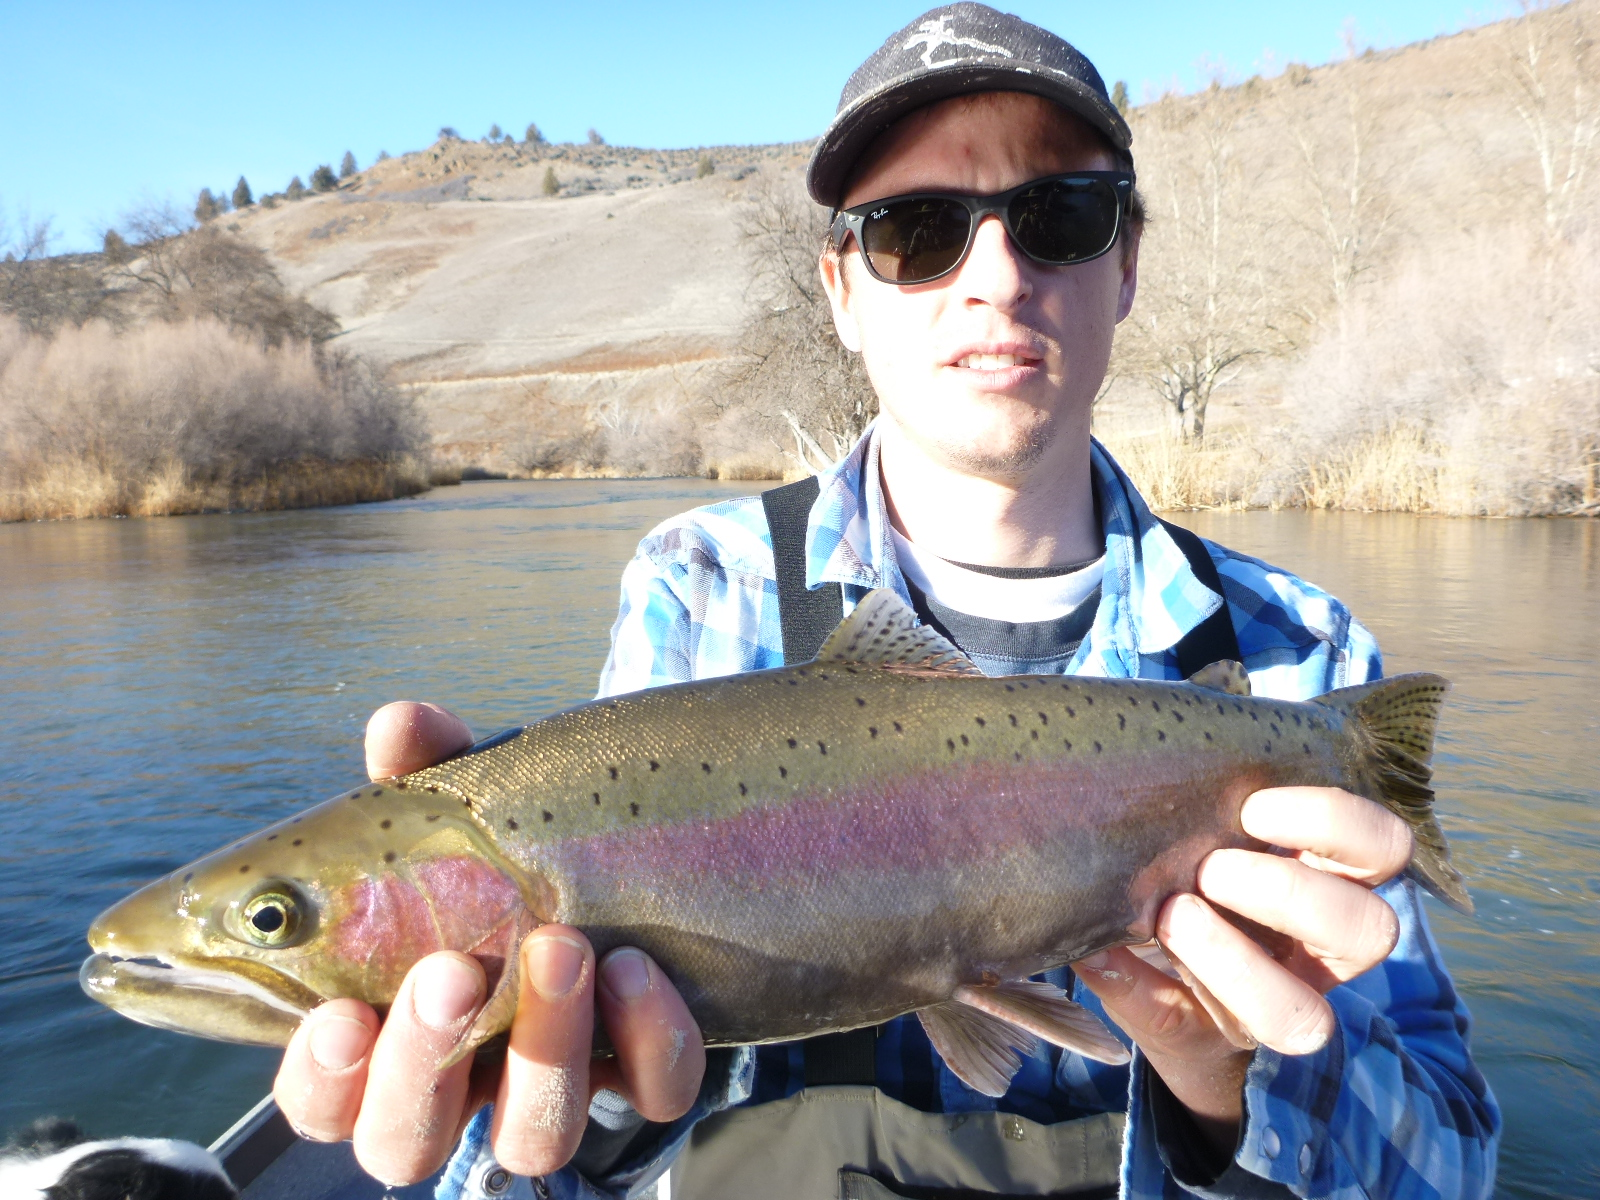 Klamath river 2014 fly fishing report for Klamath river fishing report